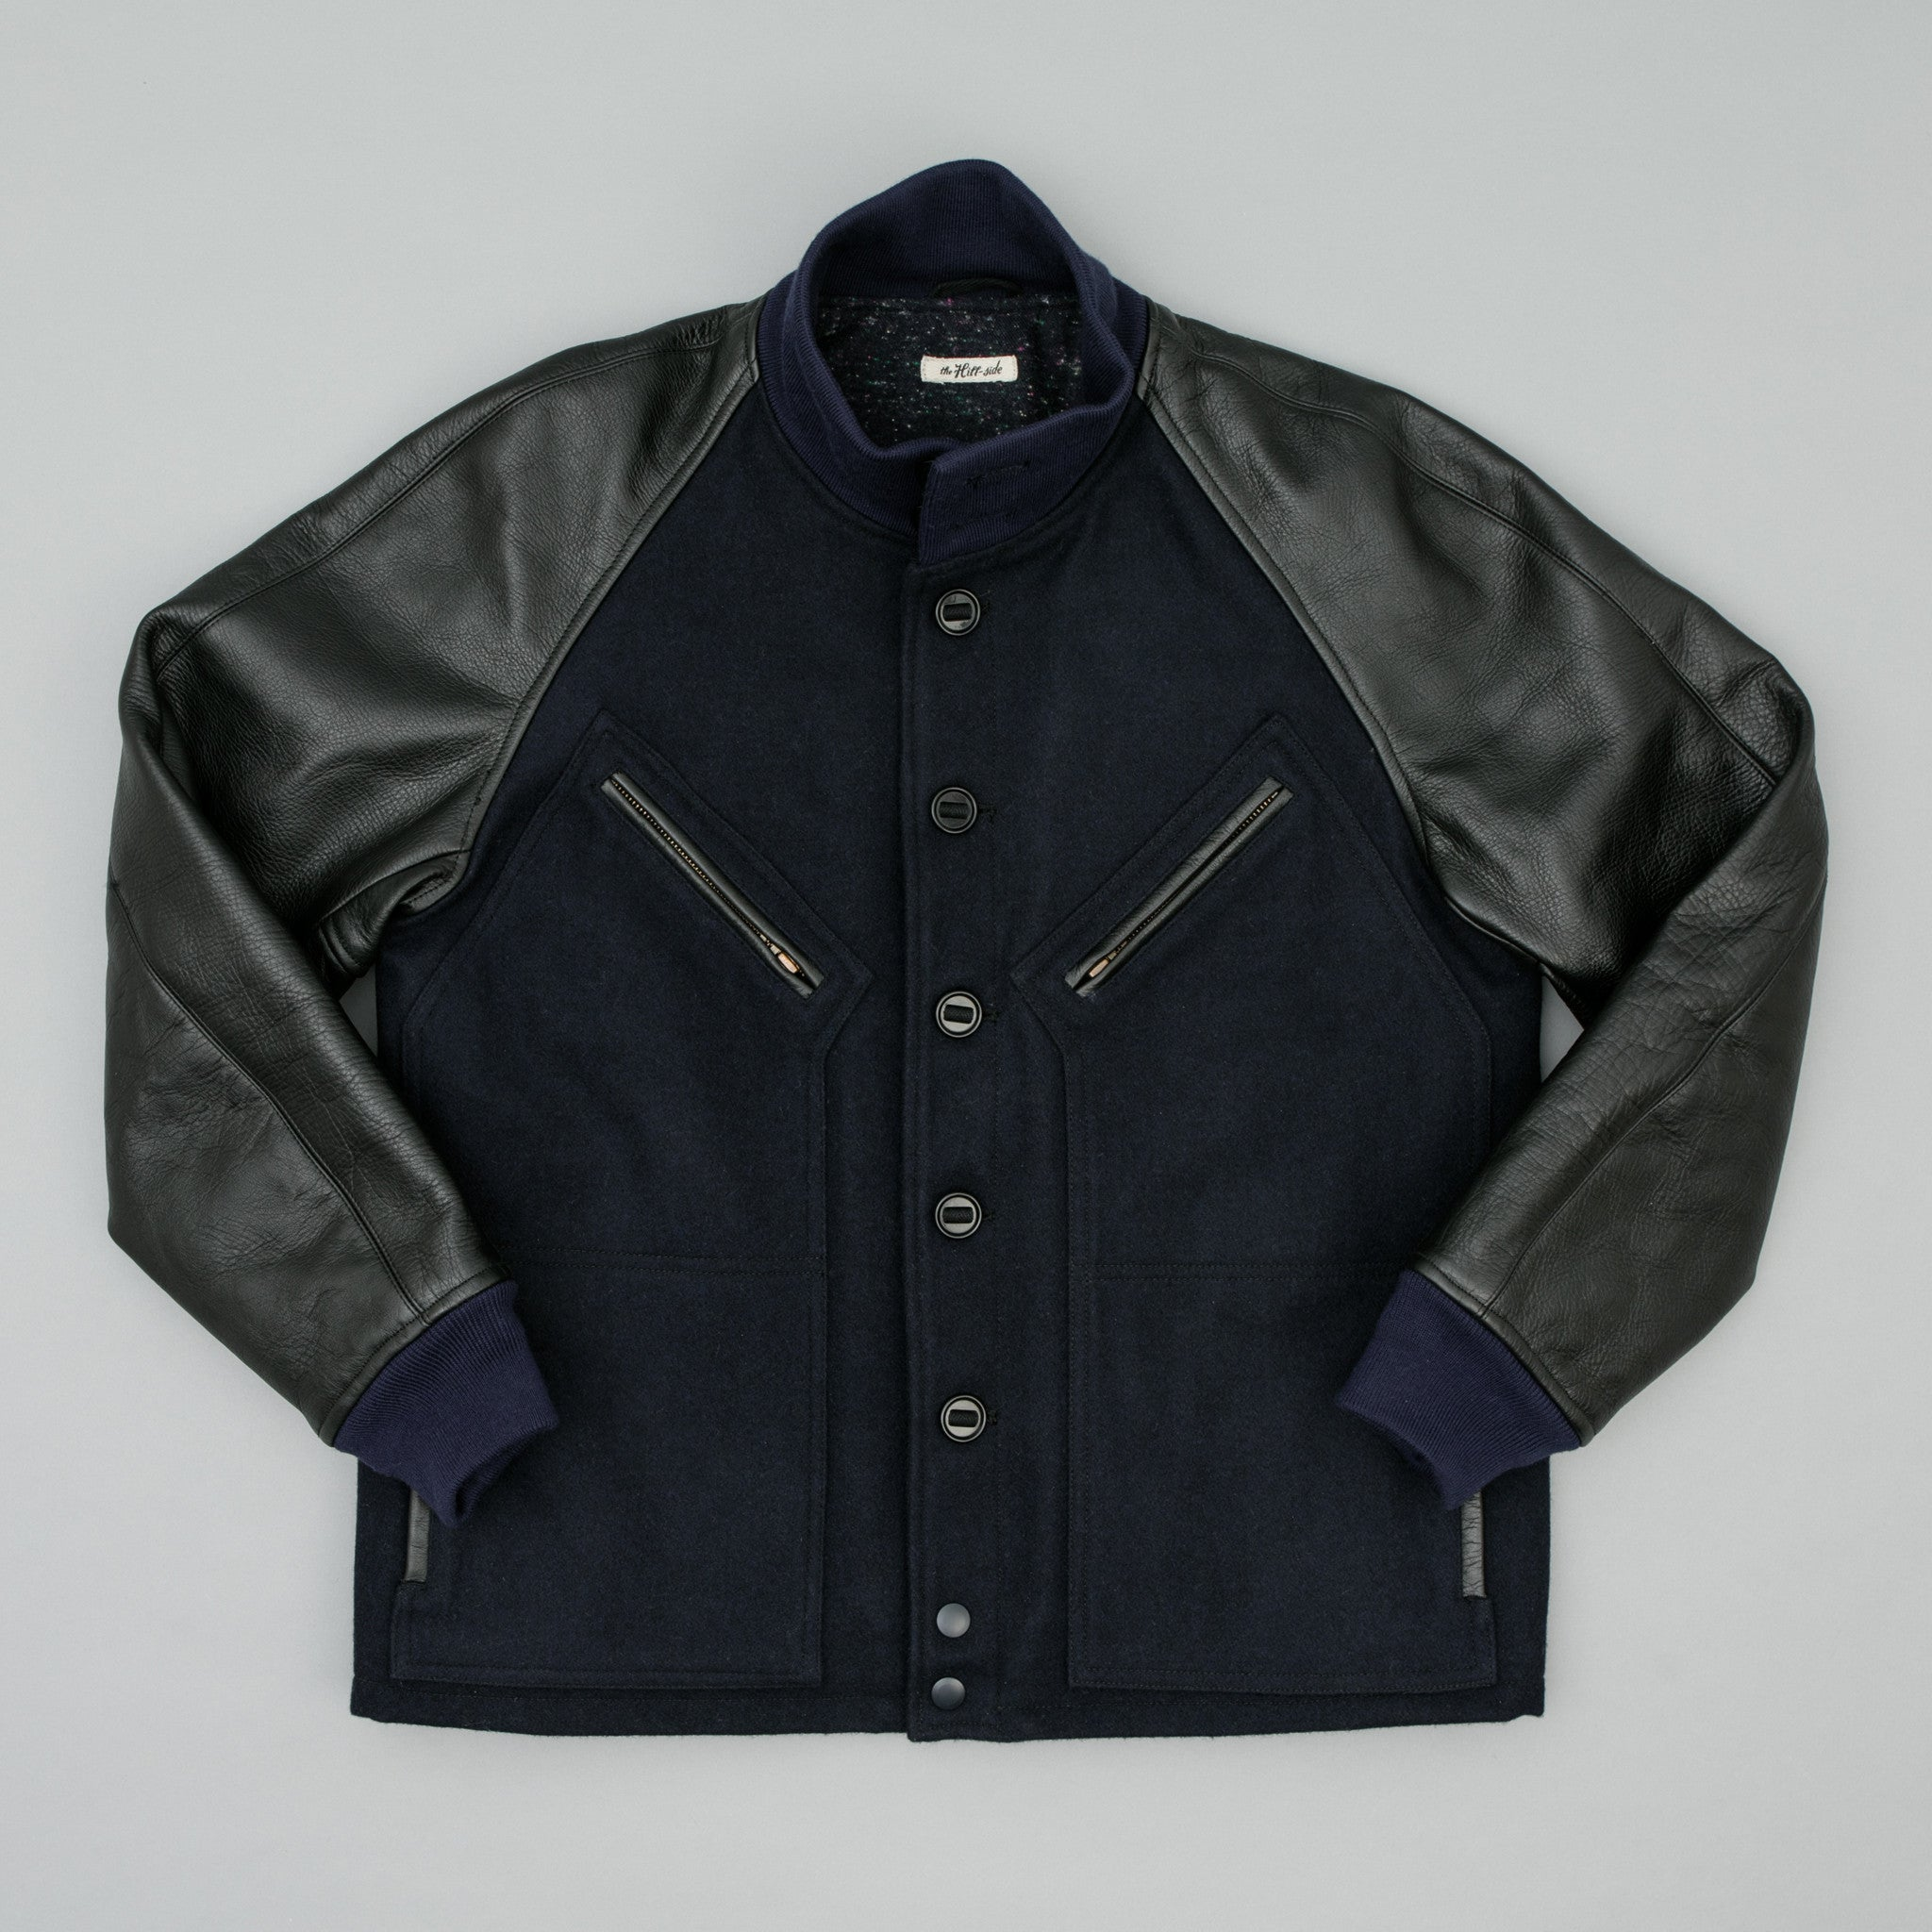 The Hill-Side - J-1 Letterman Jacket, Navy/Black - JK10-01